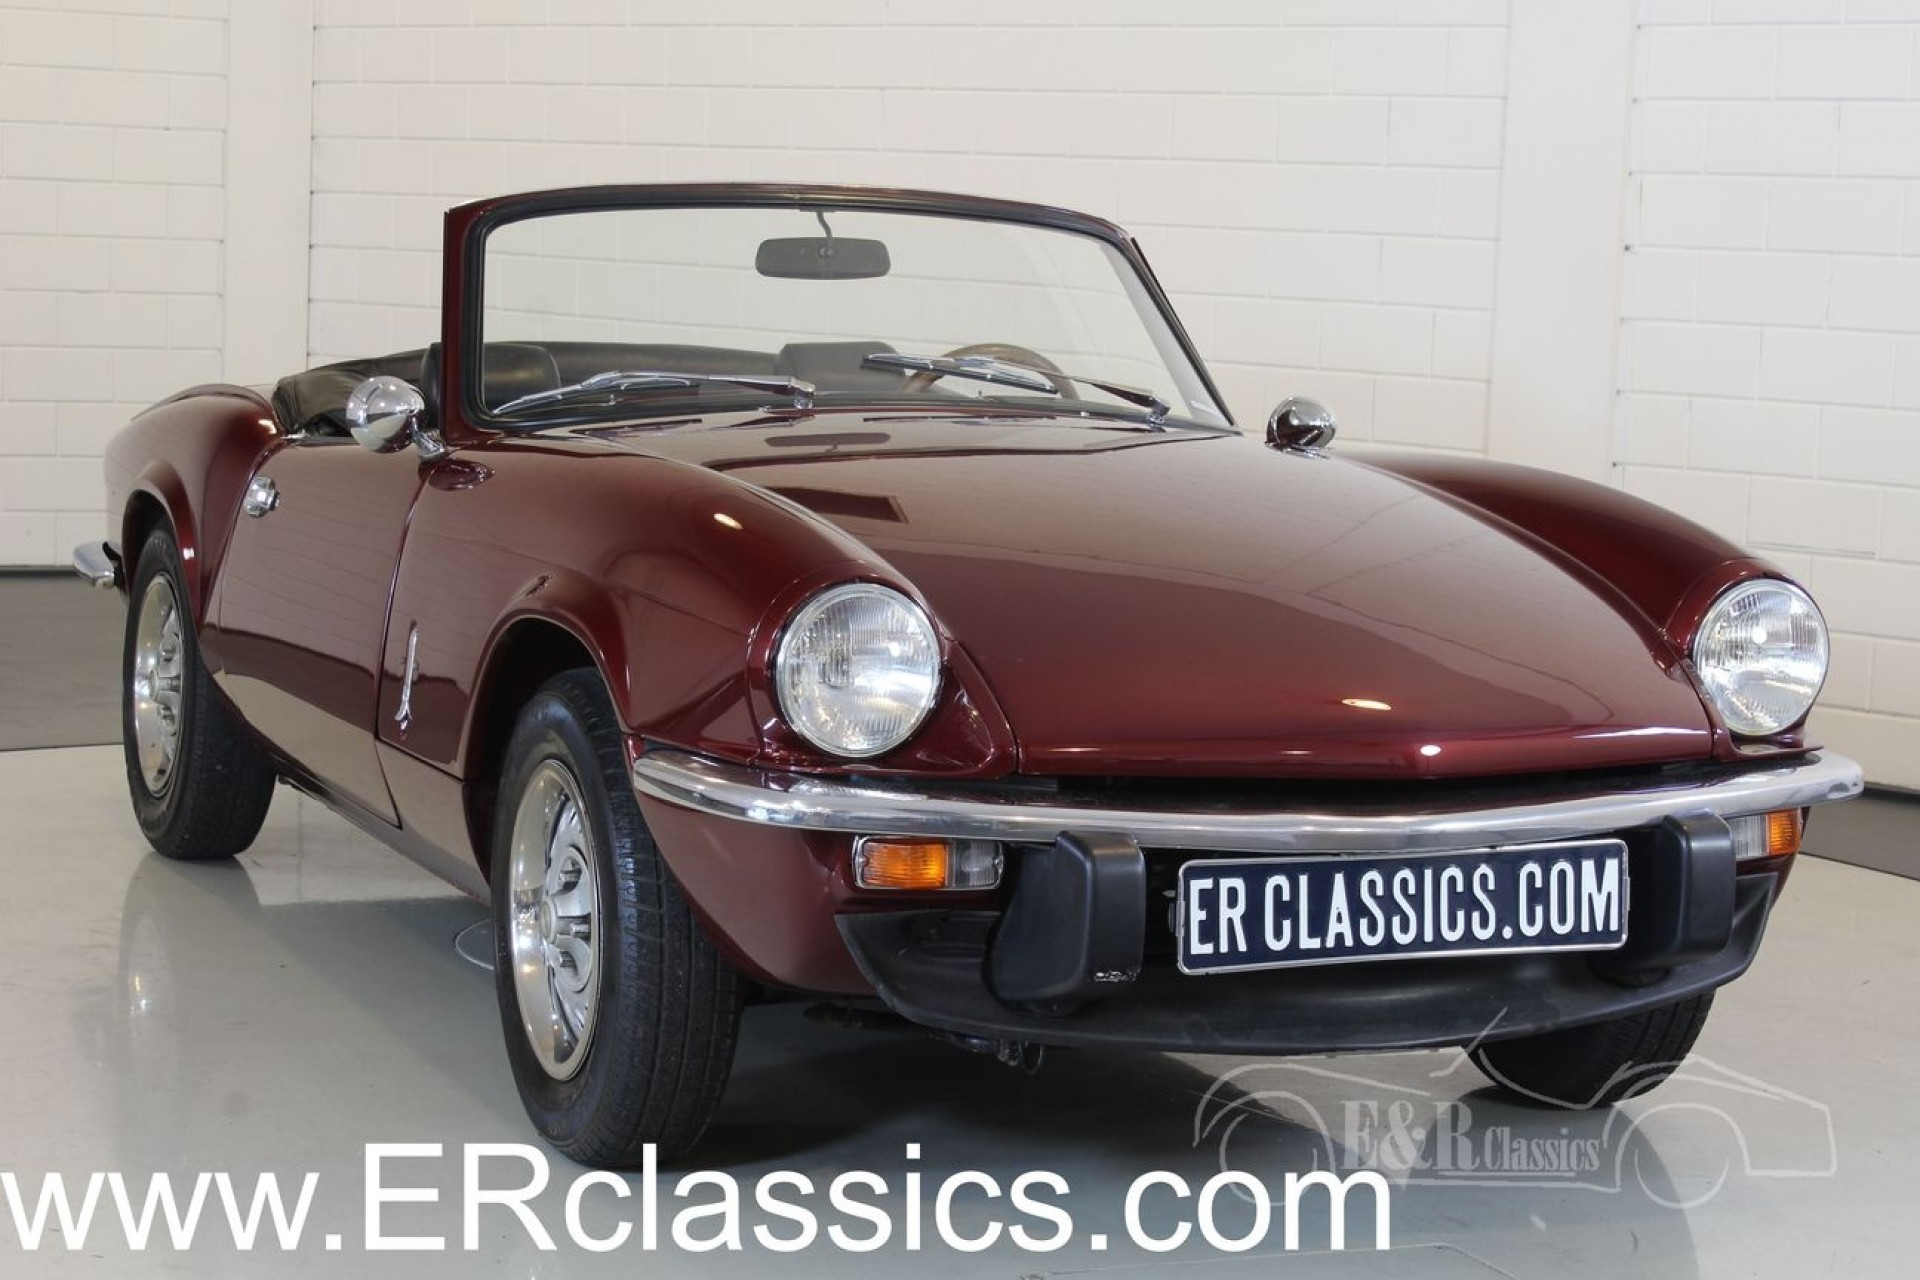 Triumph Spitfire 1500 Cabriolet 1978 for sale at ERclassics